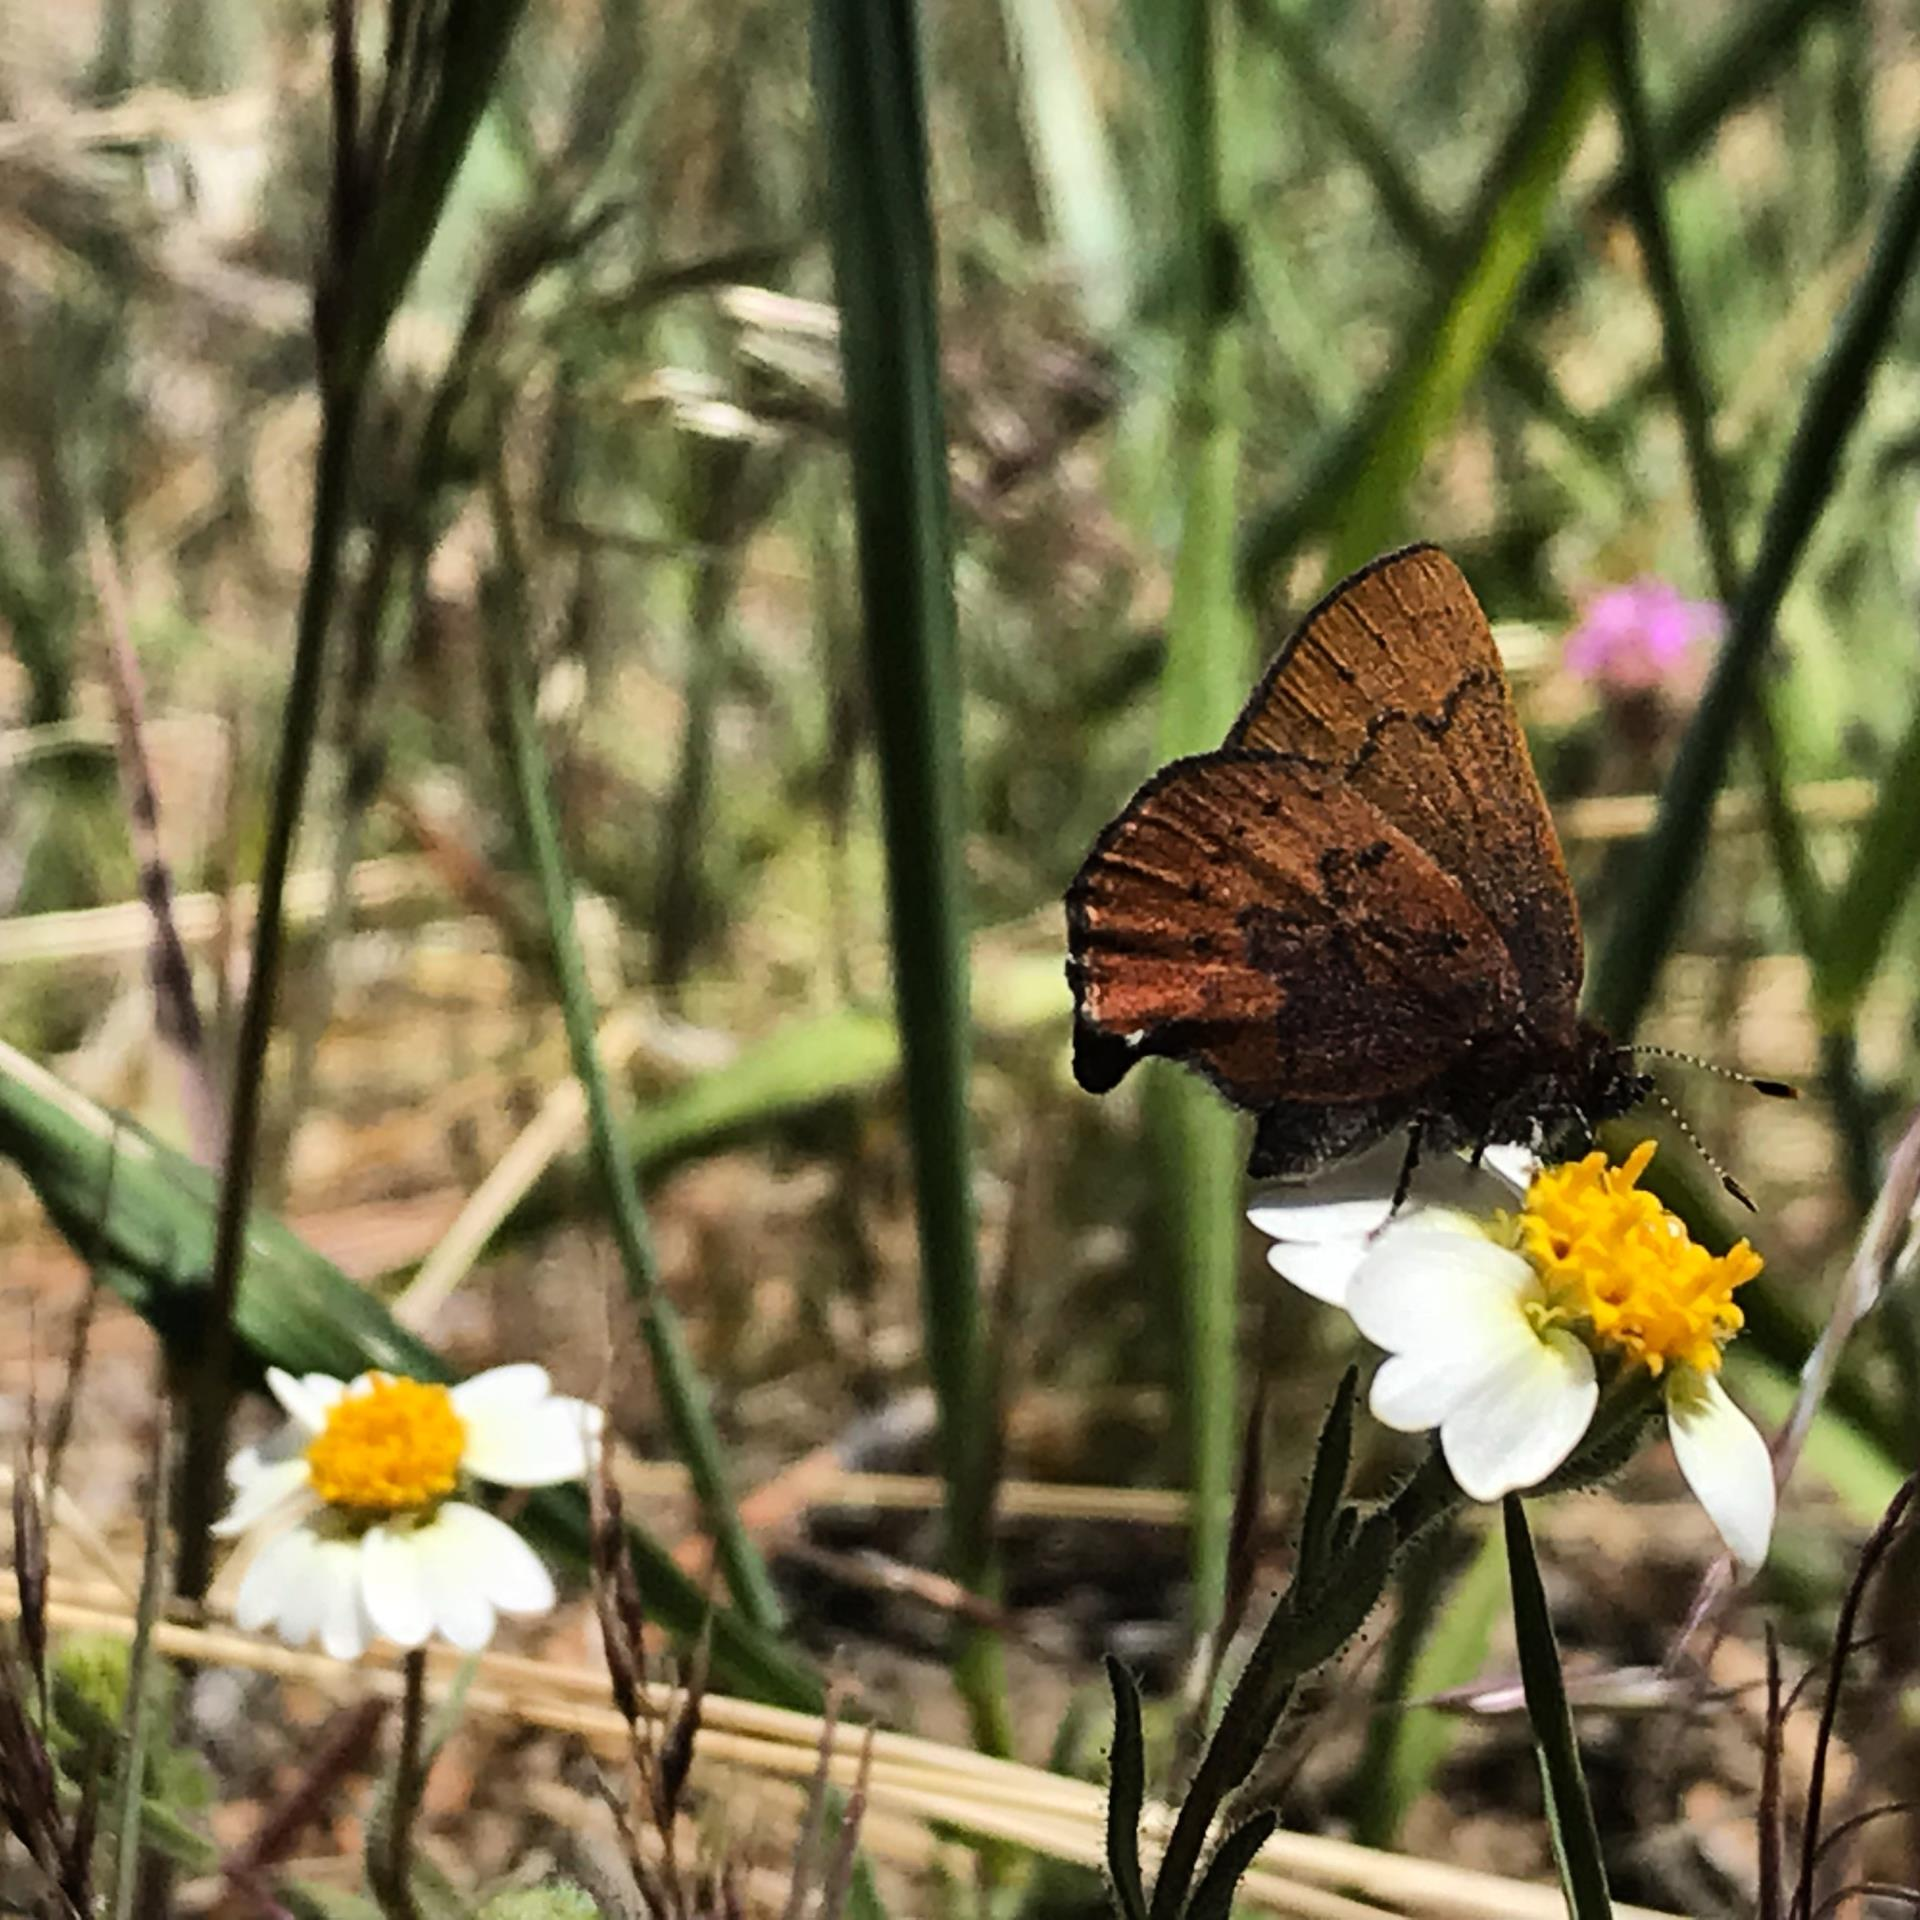 Butterfly foraging on a native Aster flower.